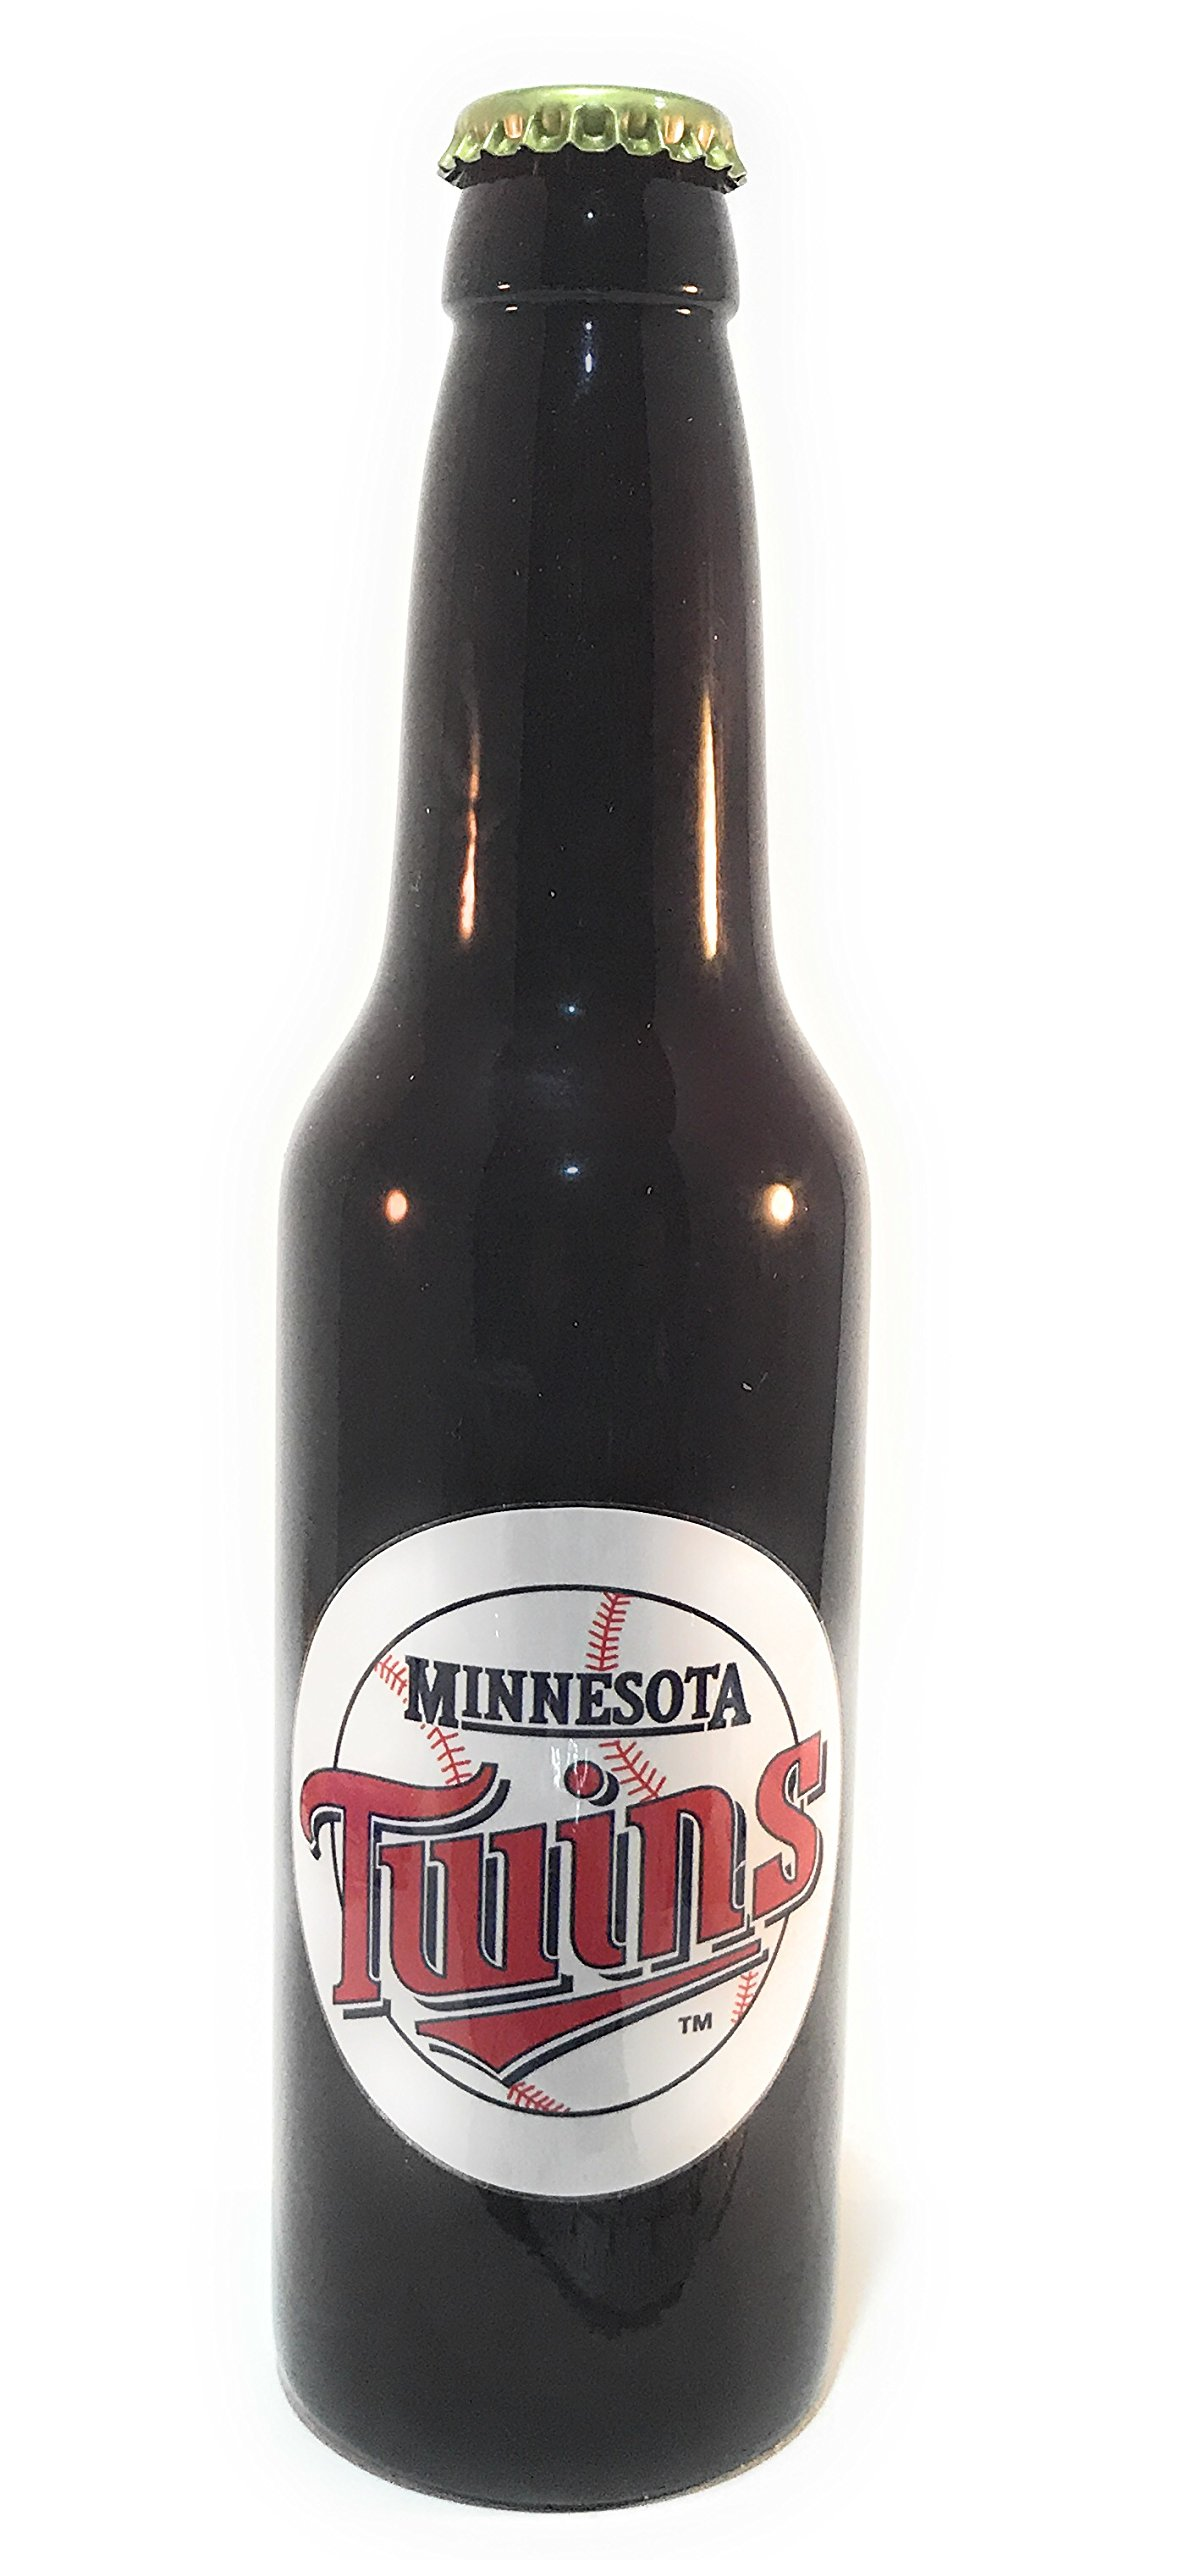 Minnesota Twins Beer Tap handle Bottle Style by Matts Classic Collectibles (Image #1)